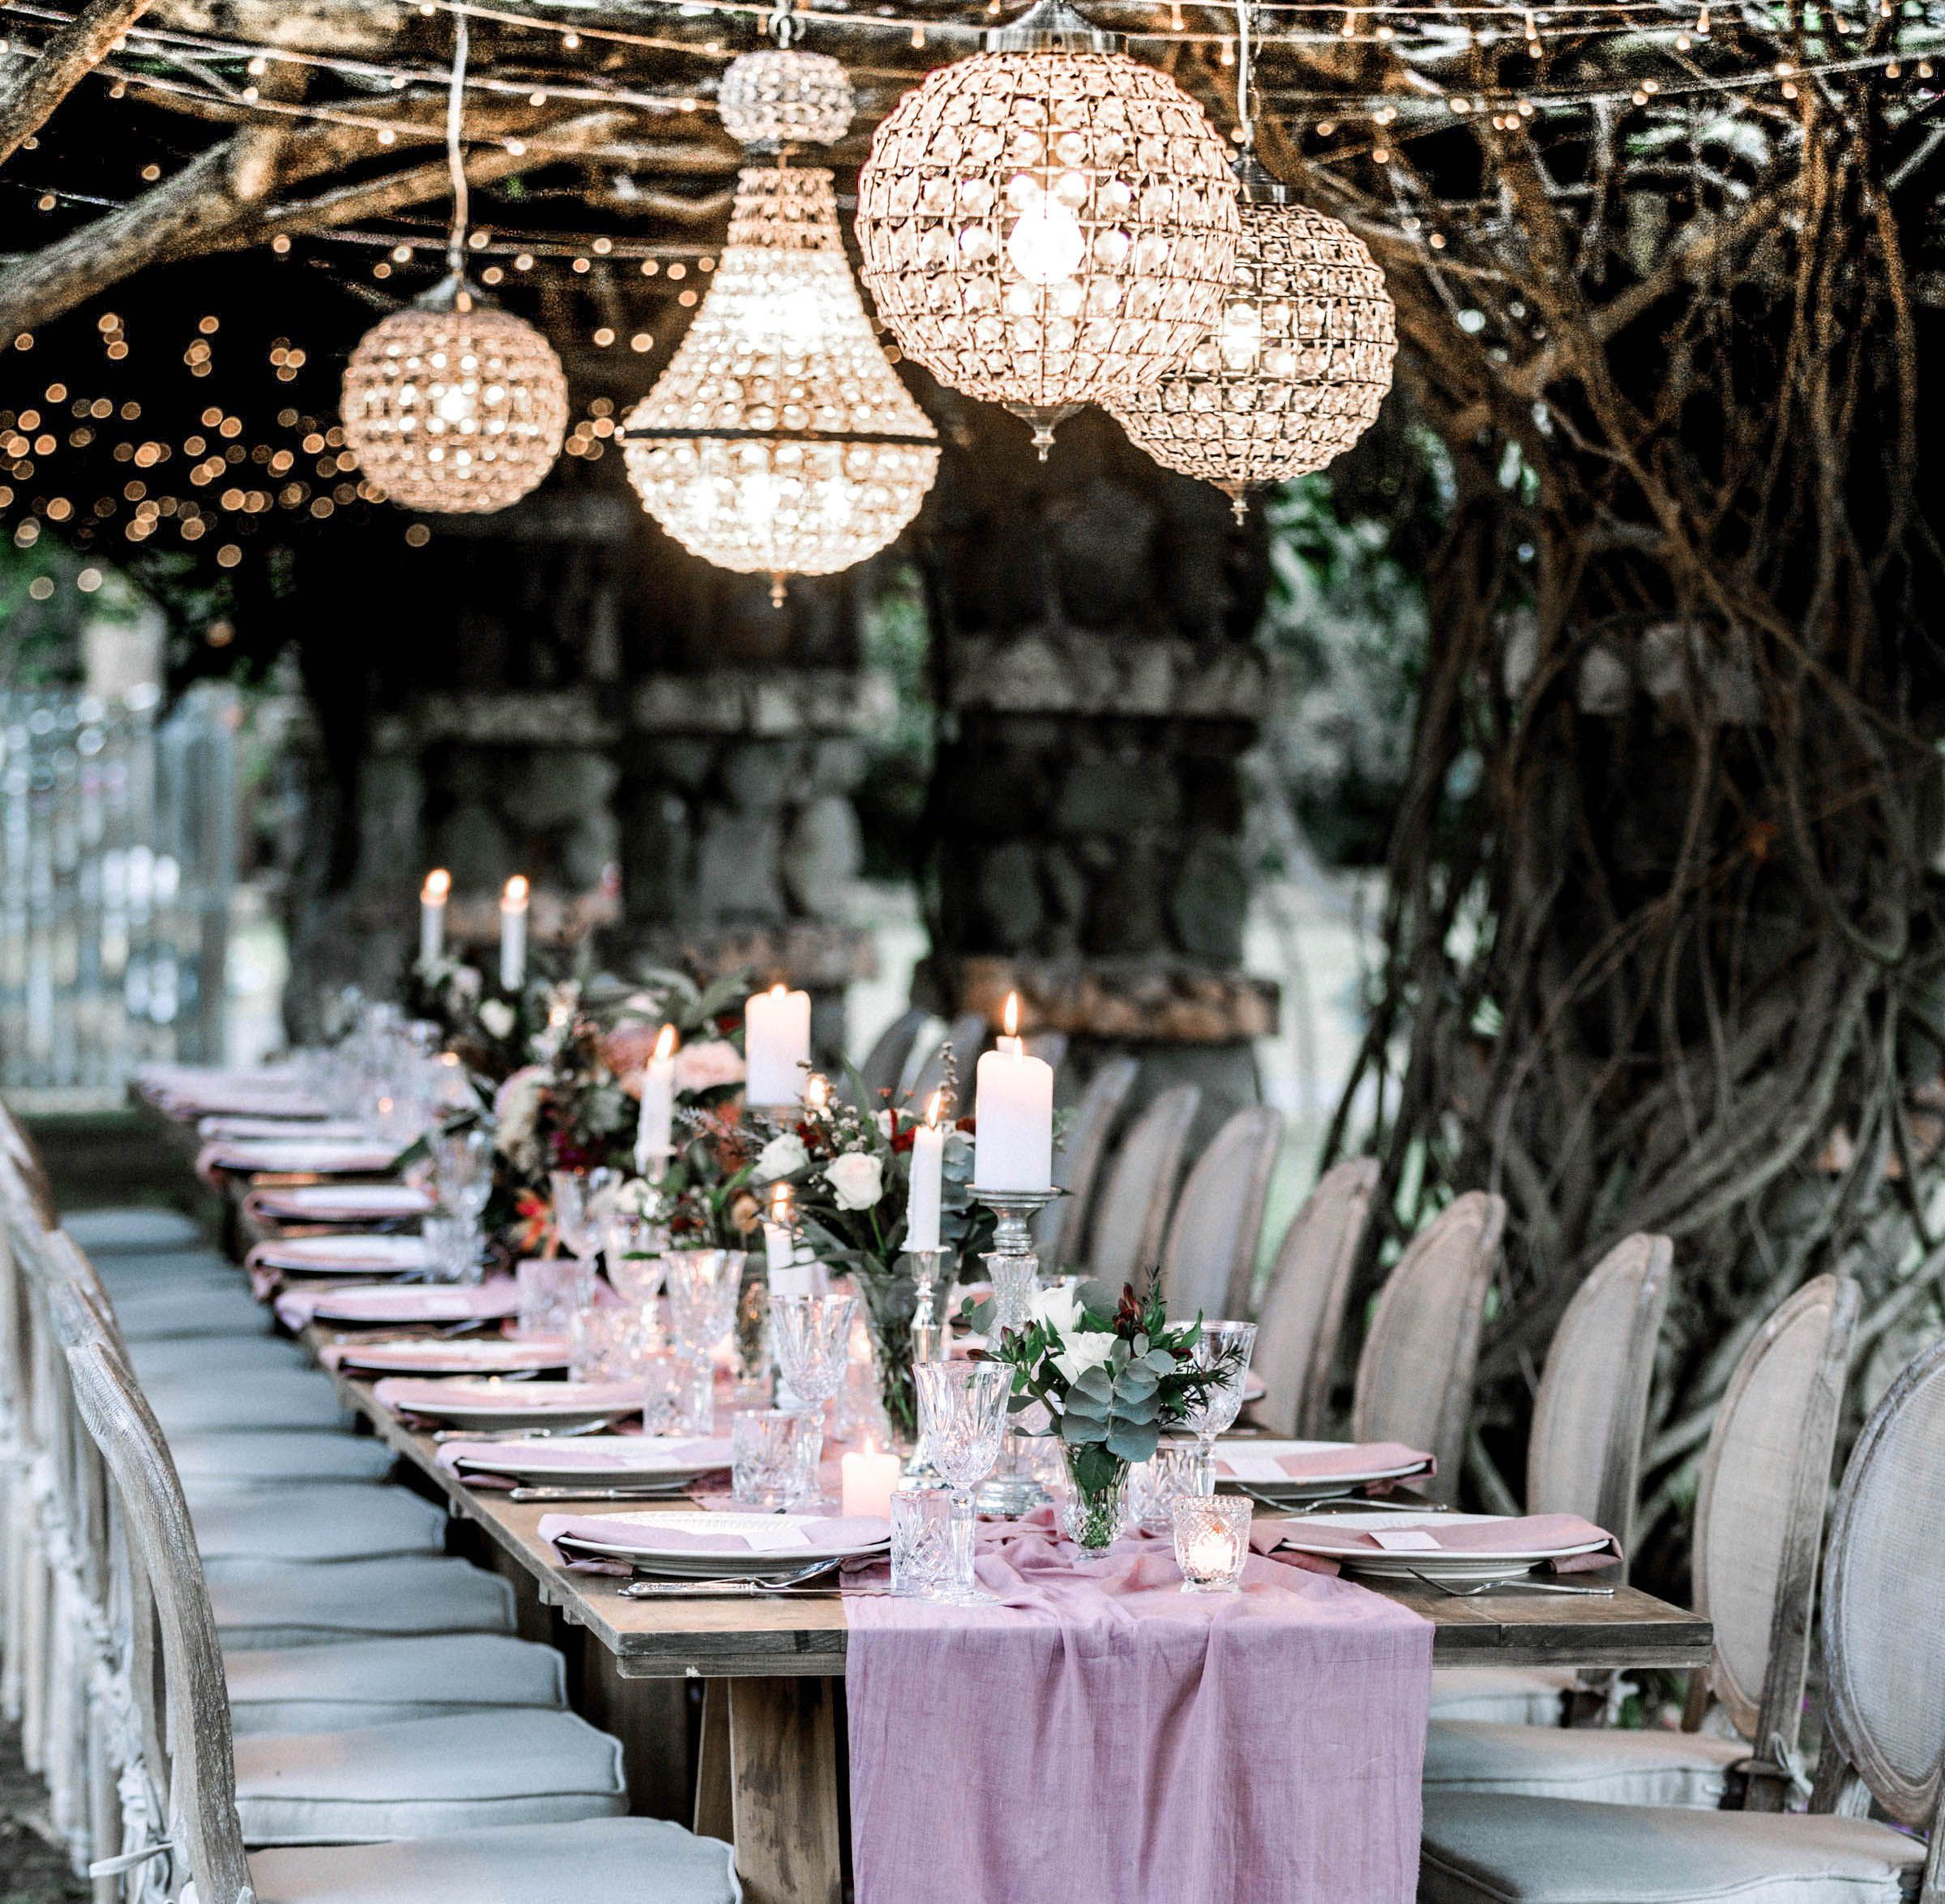 Stunning Chandeliers Suspended Over Wedding Tables Wedding Furniture Wedding Table Centerpieces Wedding Table Decorations